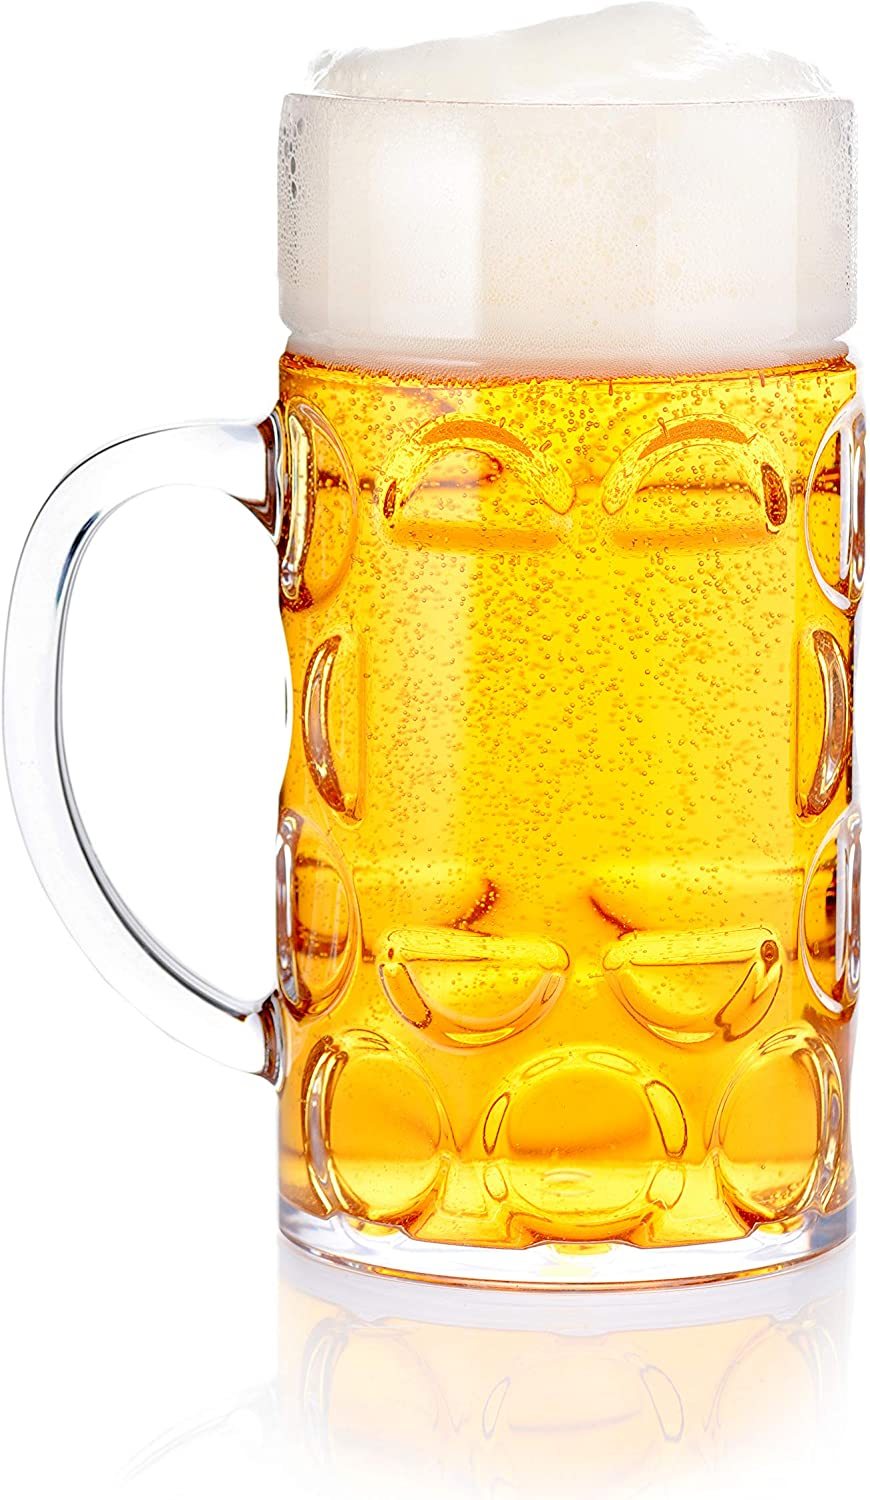 32oz Plastic Beer Mug Bierstein (1 liter) with Handles, Reusable, Dishwasher Safe, Plastic for Indoor/Outdoor Use